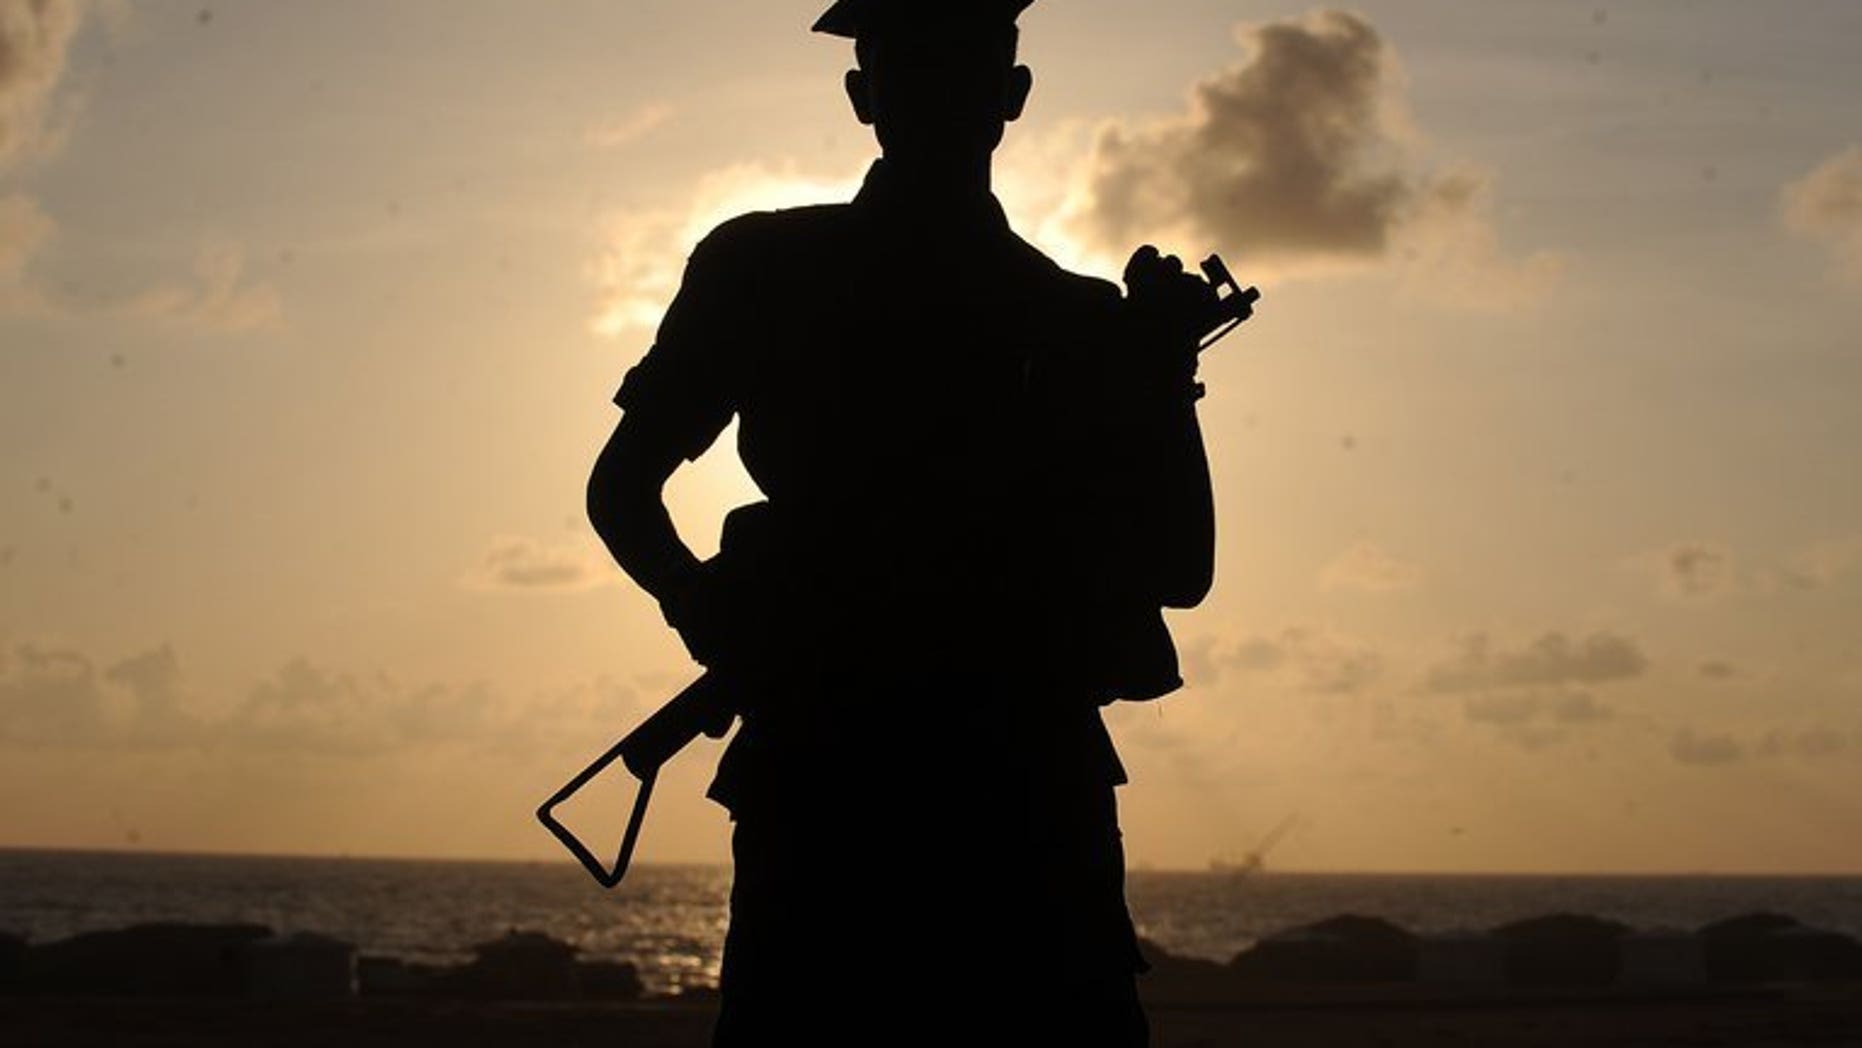 A Sri Lankan soldier stands guard on the seaside in Colombo, on May 16, 2012. Foreign observers have held talks with officials and candidates in Sri Lanka's former war zone to ensure the region's first elections to choose a semi-autonomous council pass off peacefully.